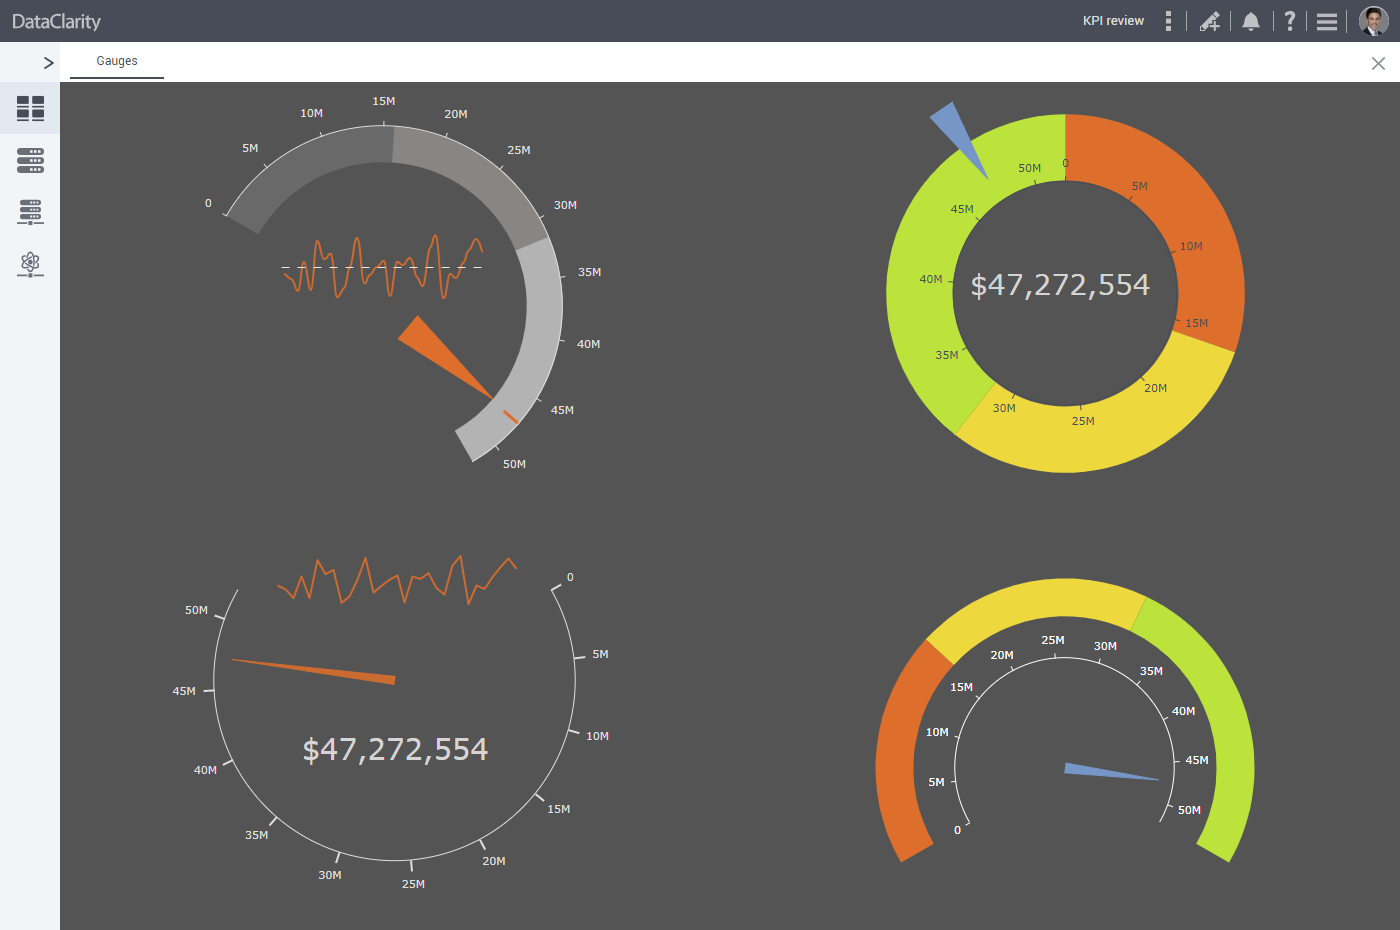 Gauge chart as a new visualization widget